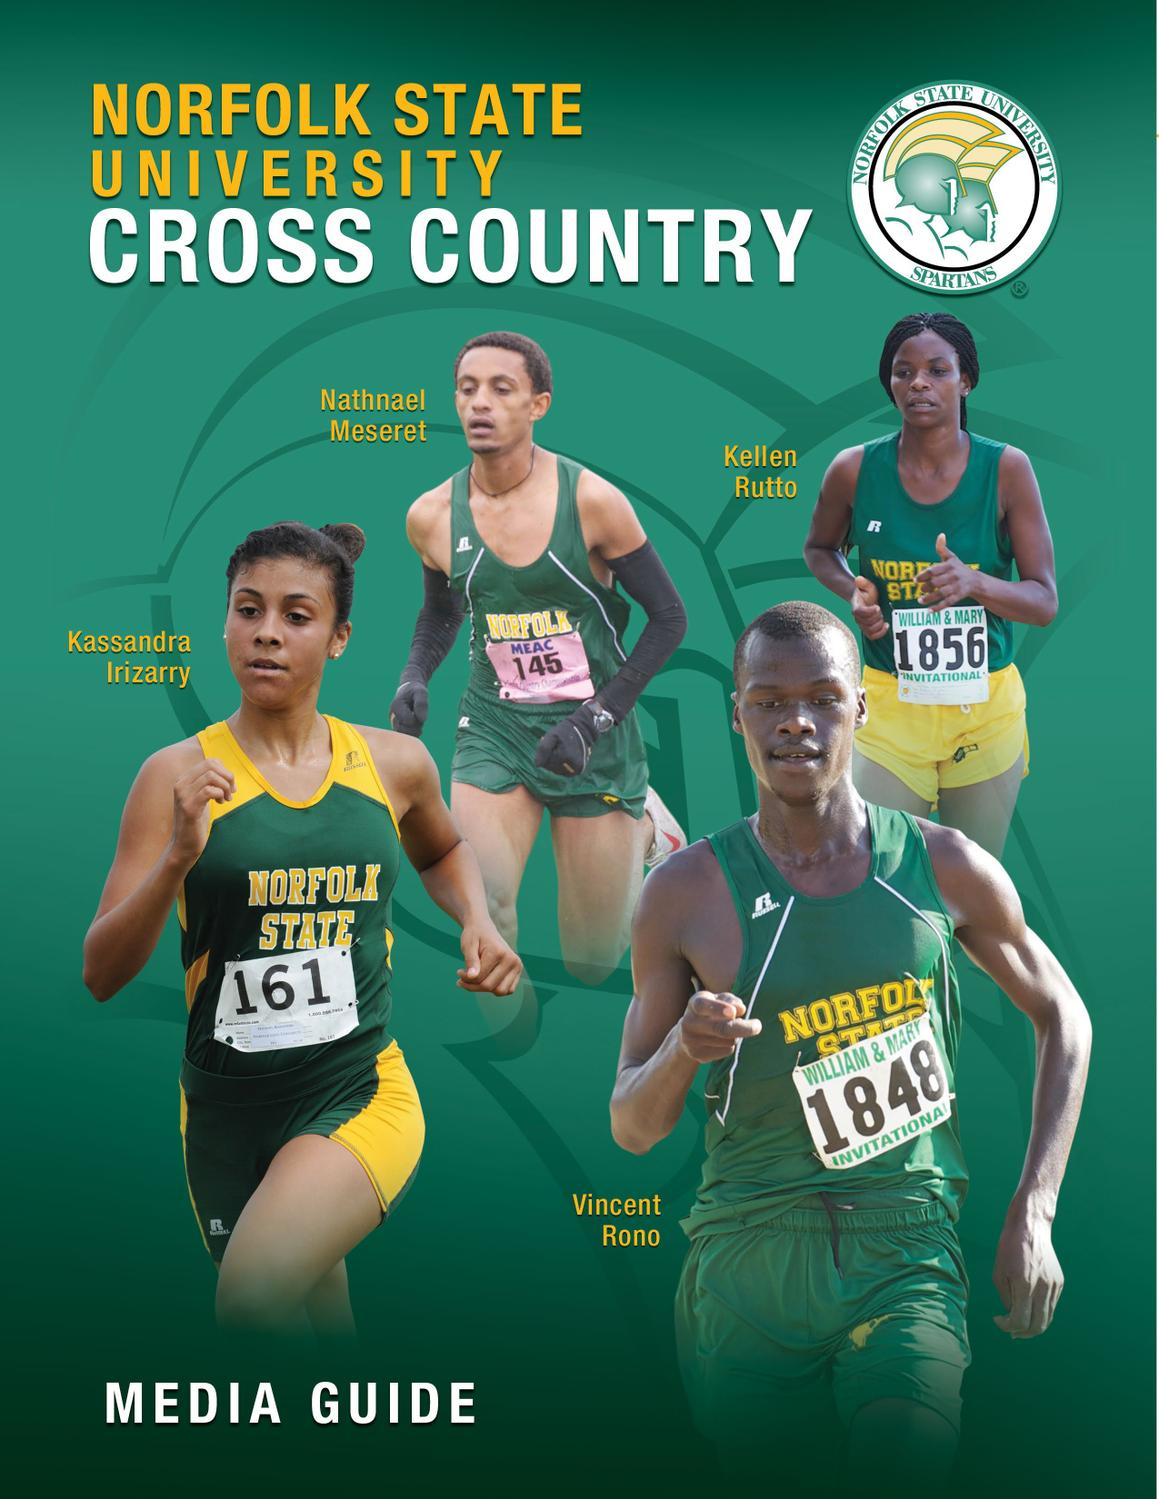 2012 NSU Cross Country Media Guide by Chaundrea Lee - Issuu